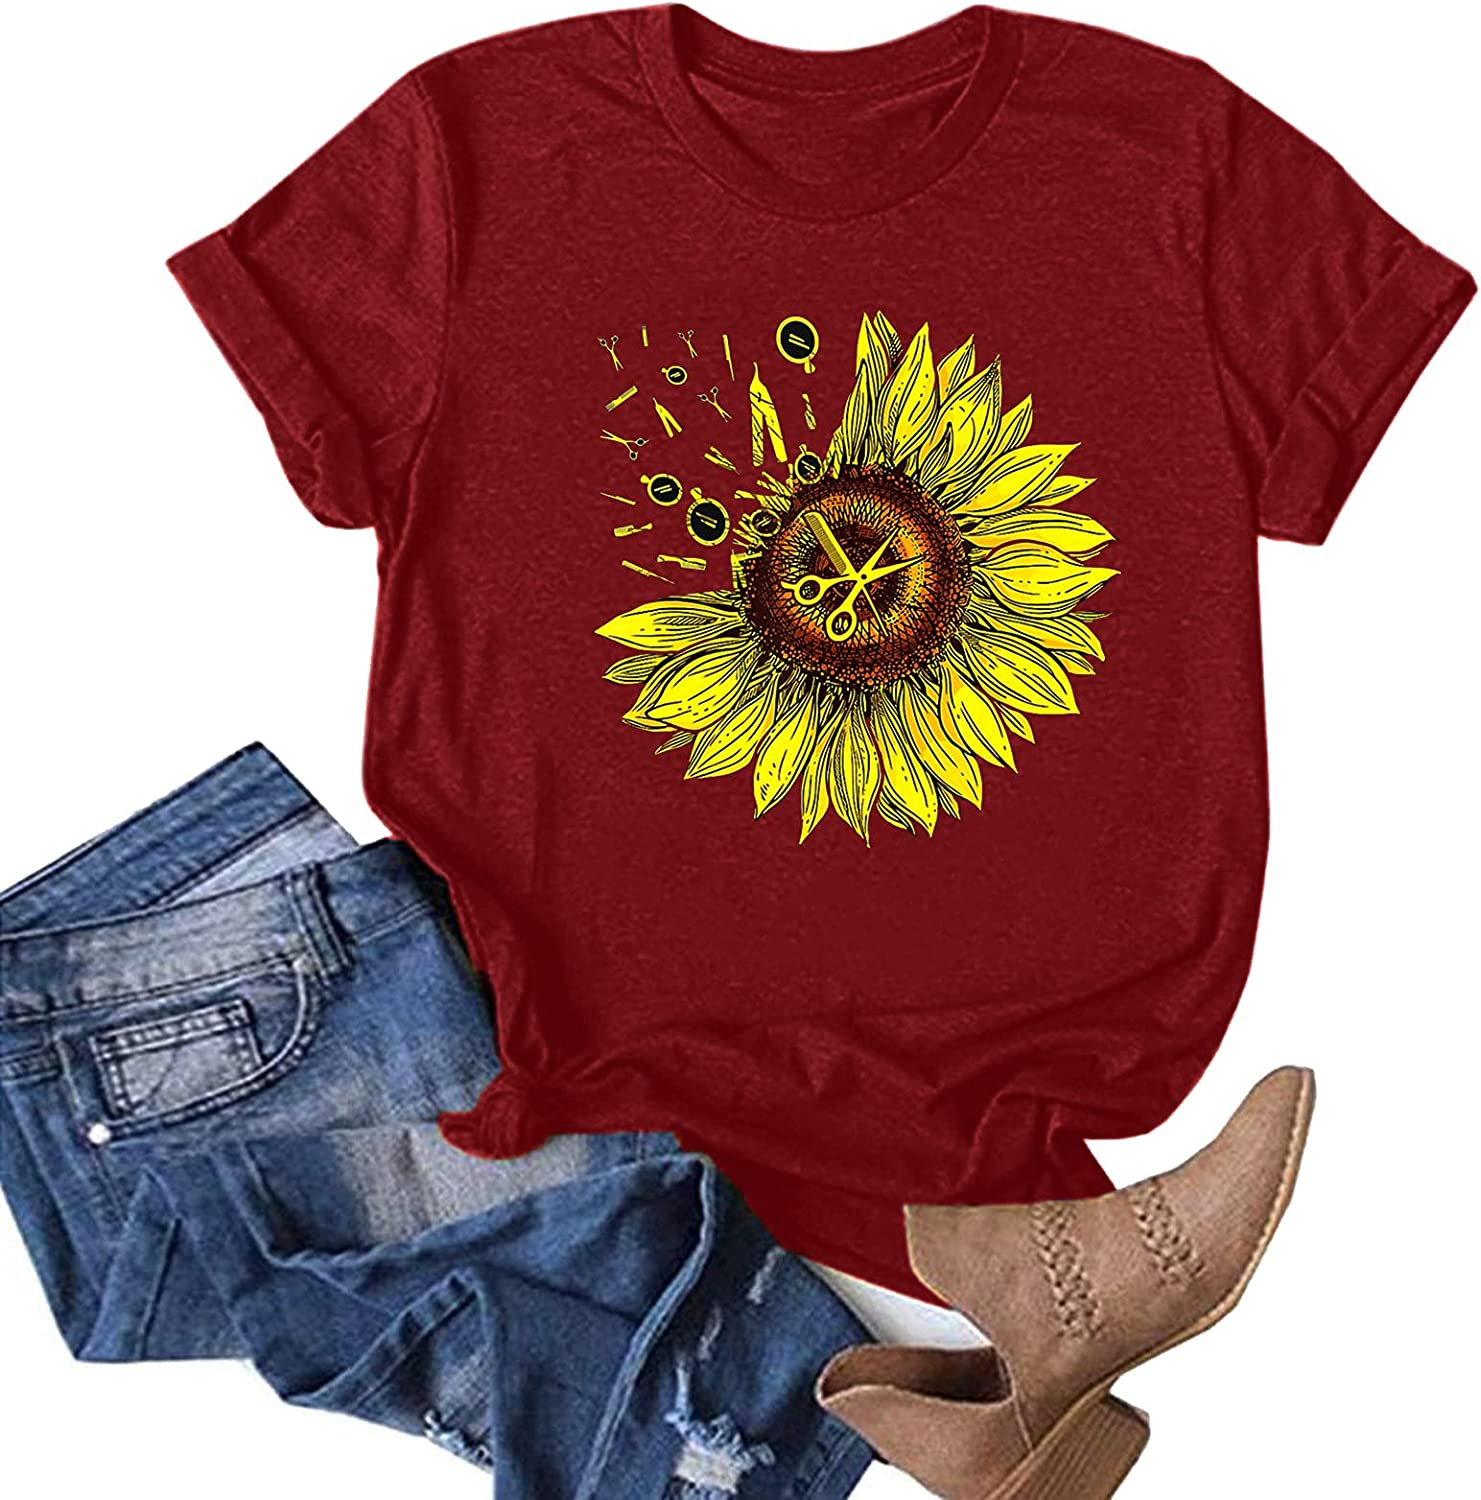 AODONG Short Sleeve Tops for Women, Womens Casual Summer Loose Fit Crewneck Graphic Blouses Tunics Tops Tees Shirts